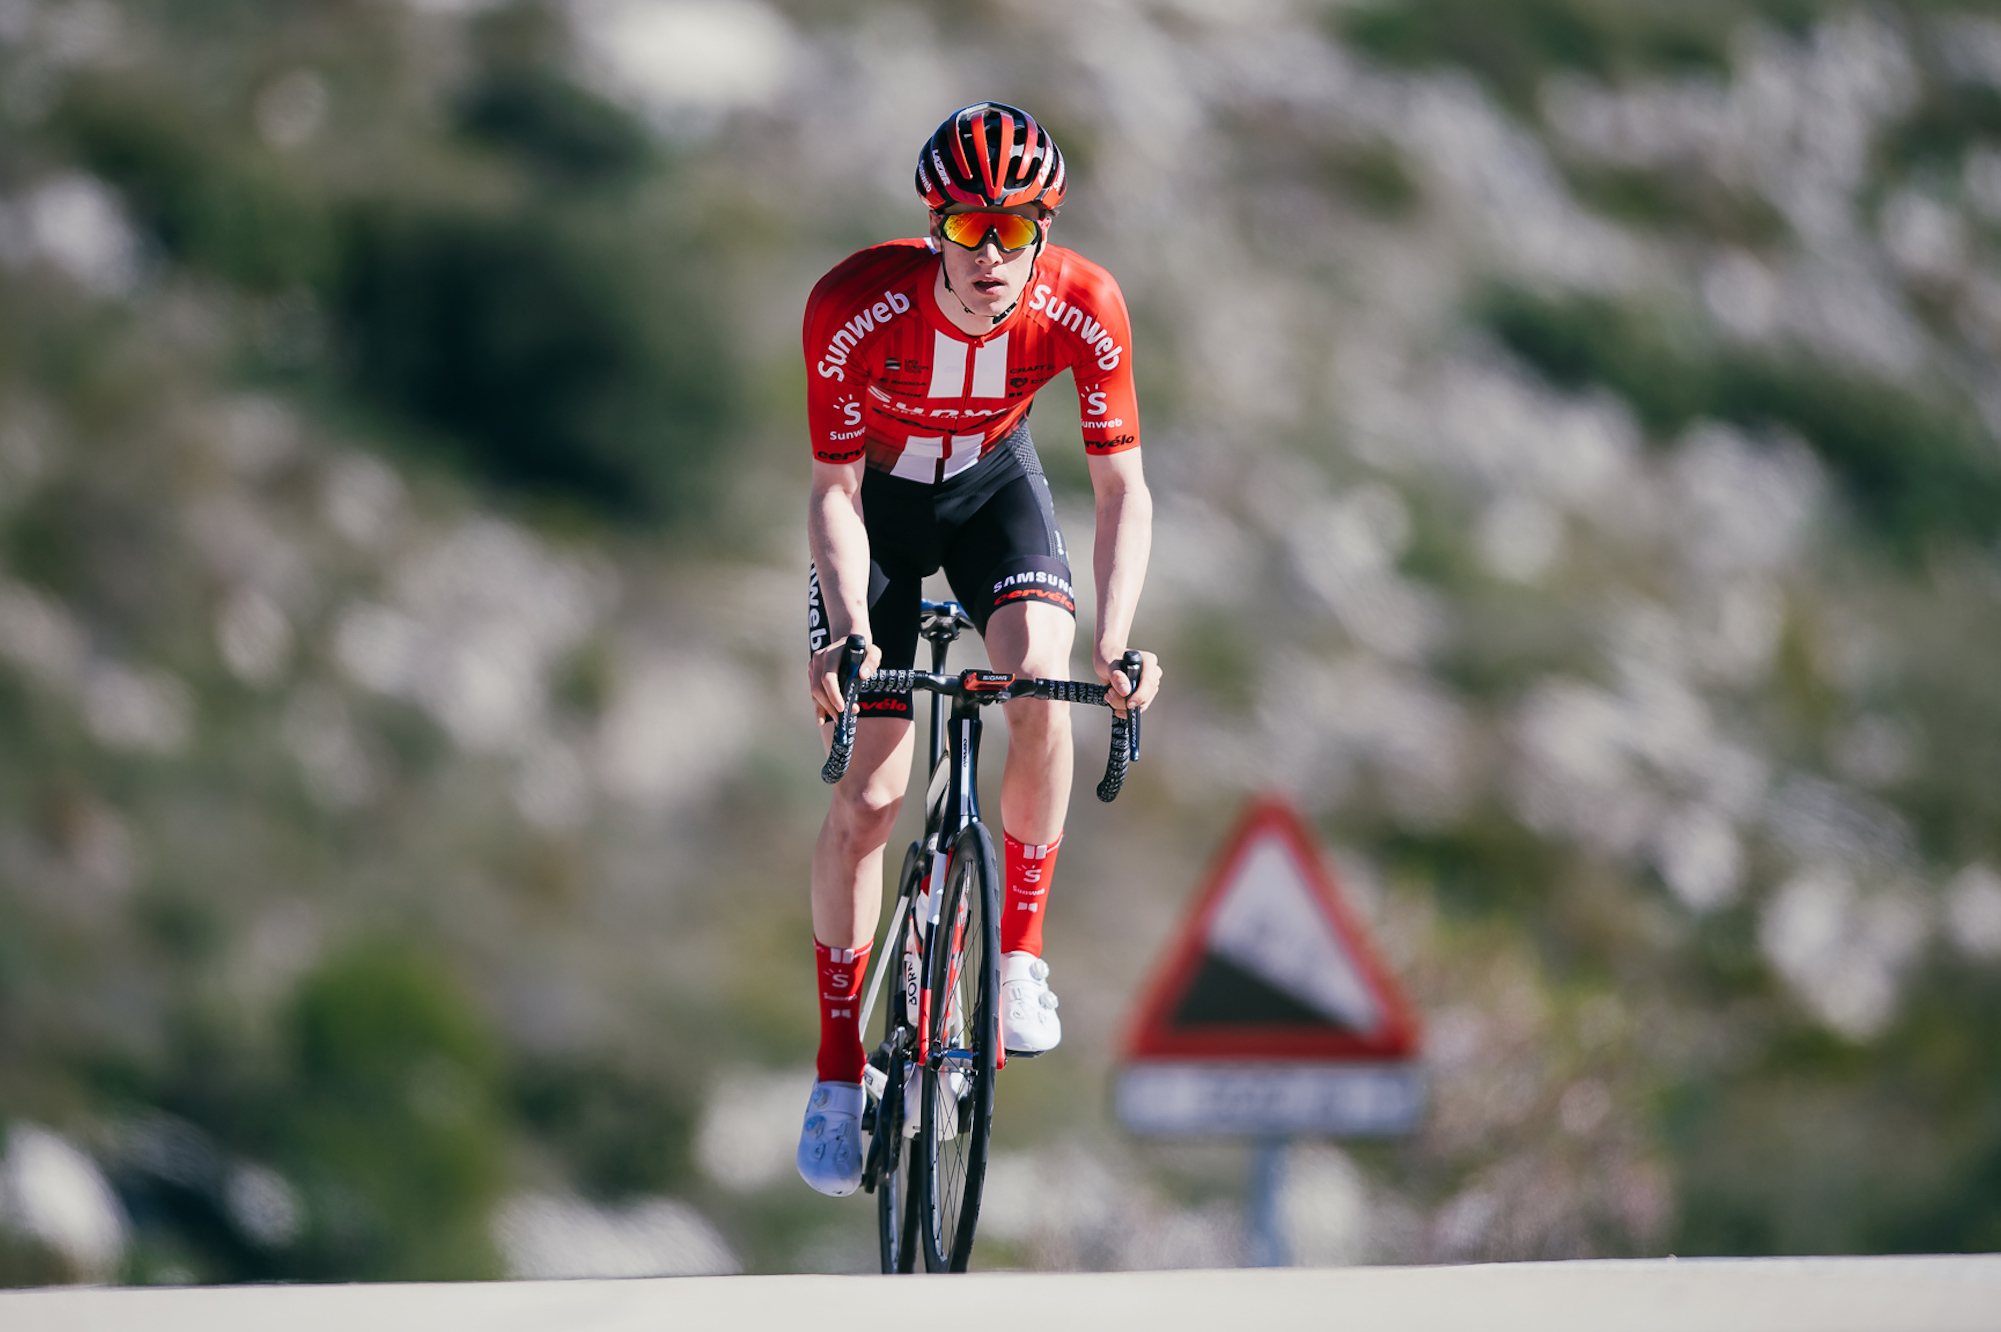 Sunweb rider Edo Maas may never walk again after crash